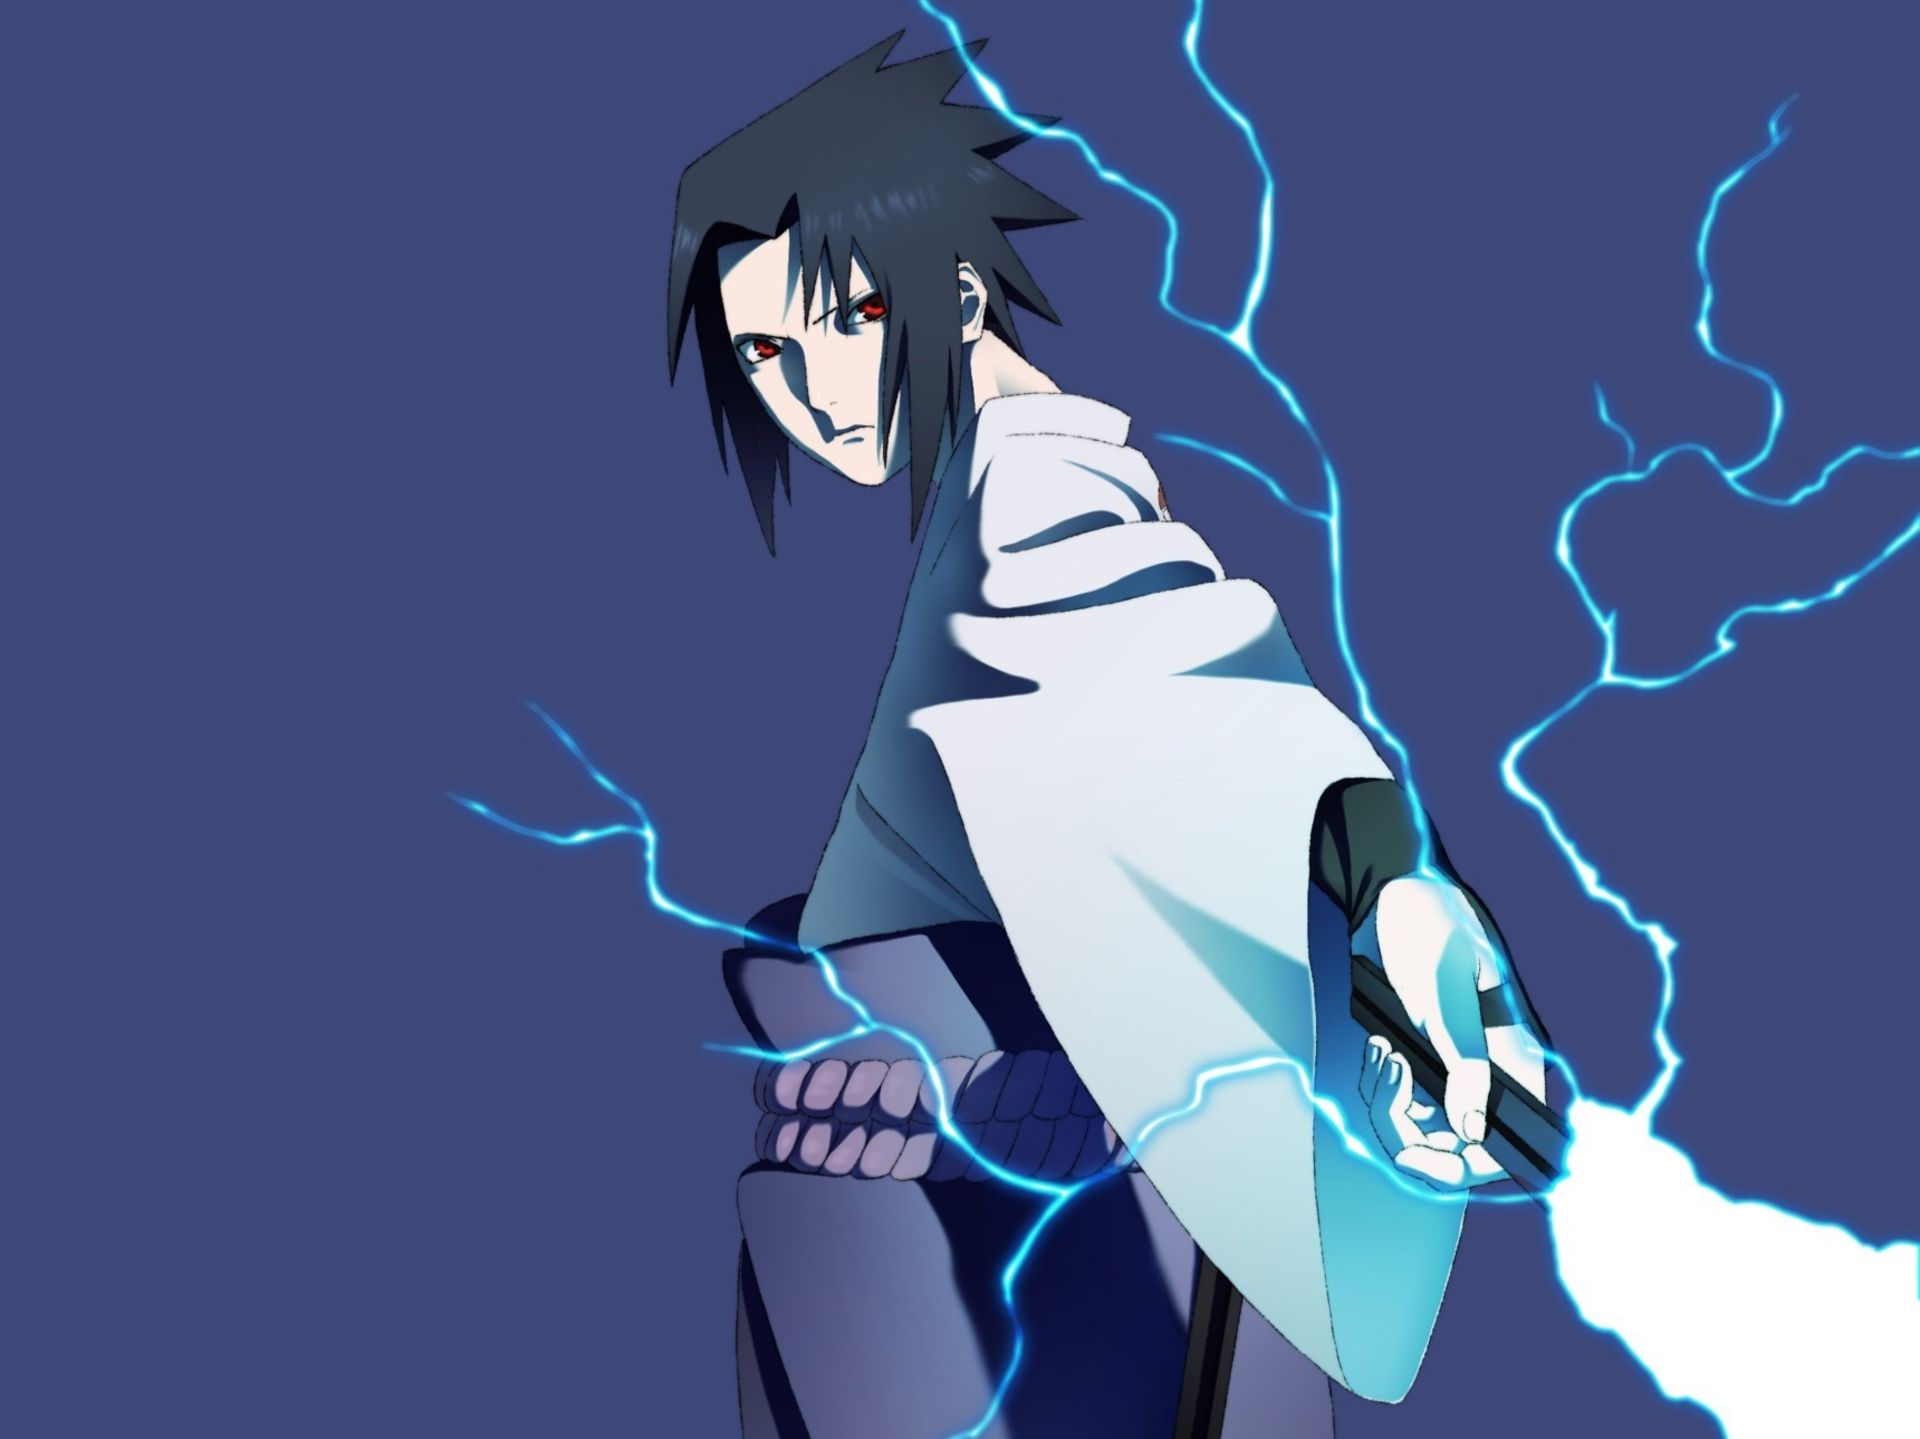 Anime Naruto Sasuke Uchiha Hd Wallpaper Background Image In 2020